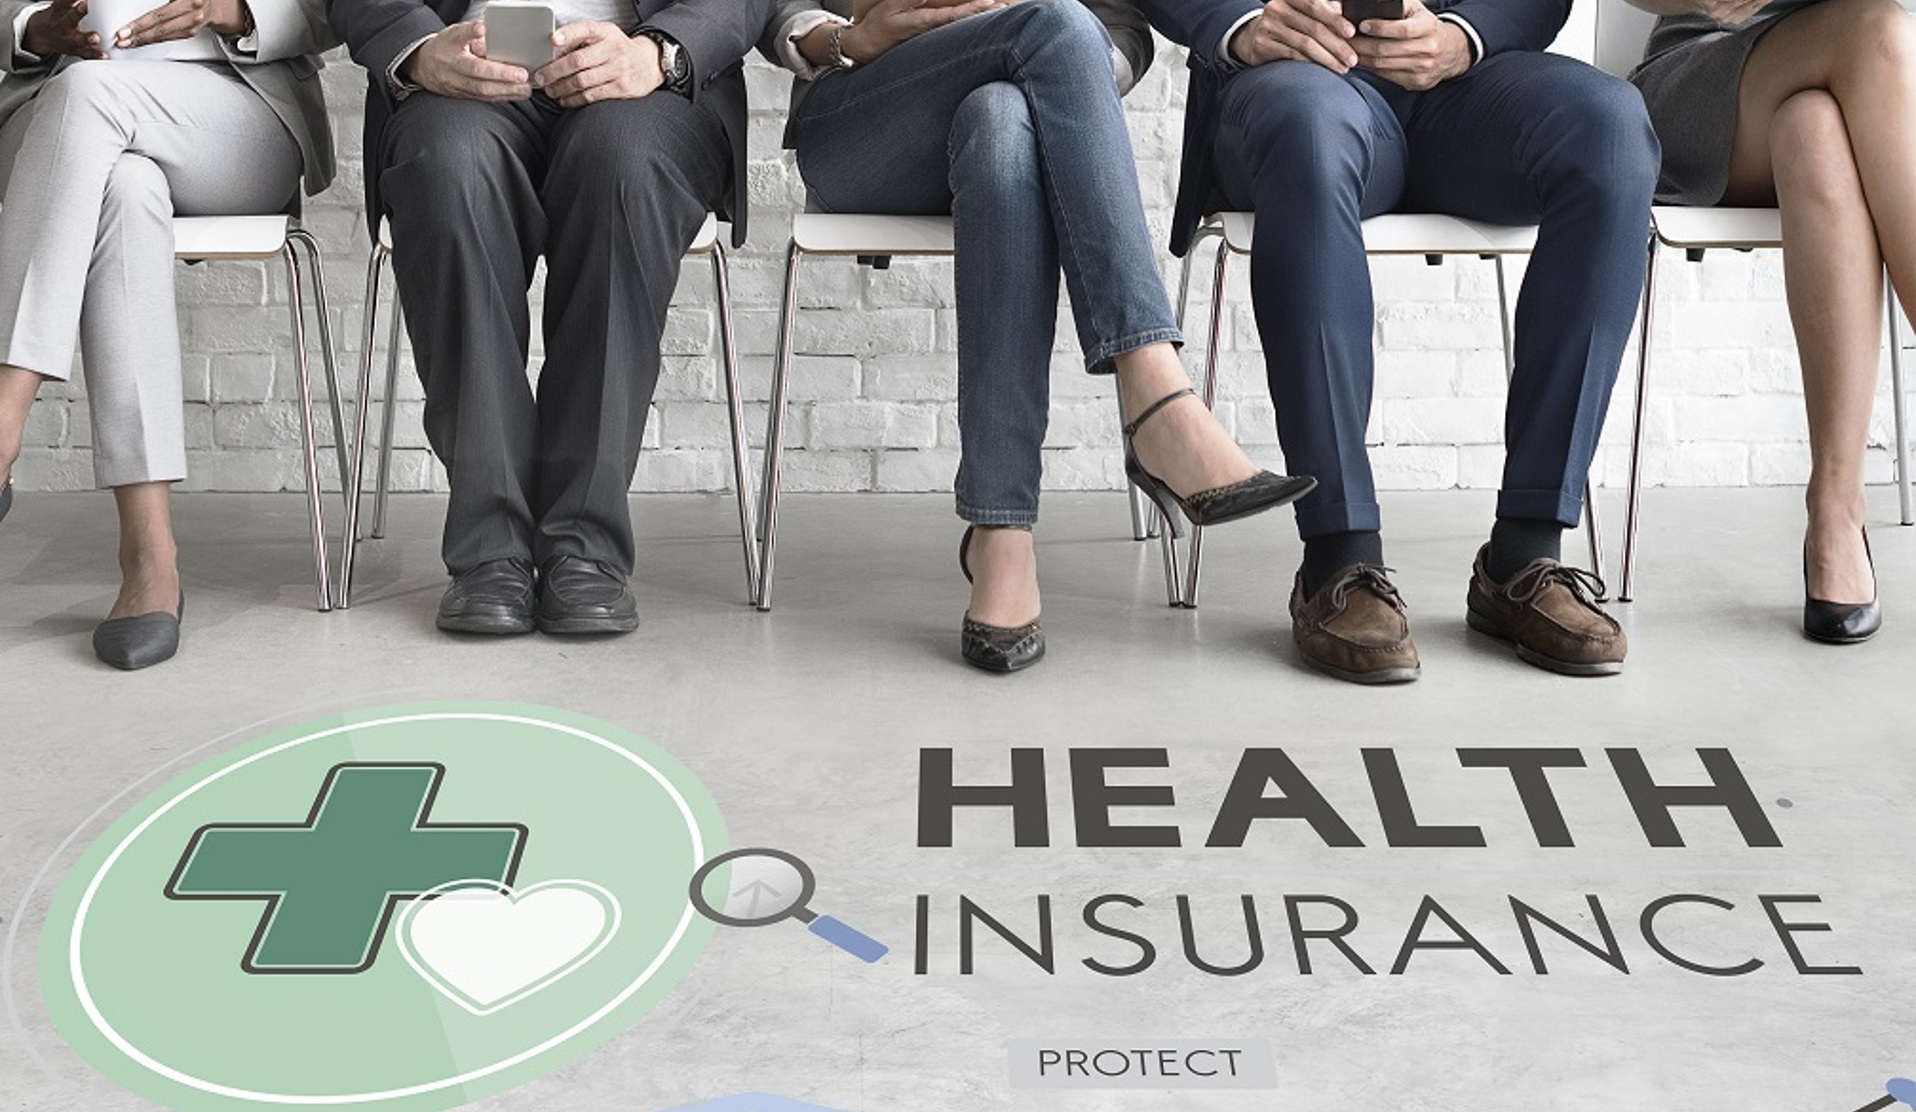 Health Insurance Assurance Medical Risk Safety Concept